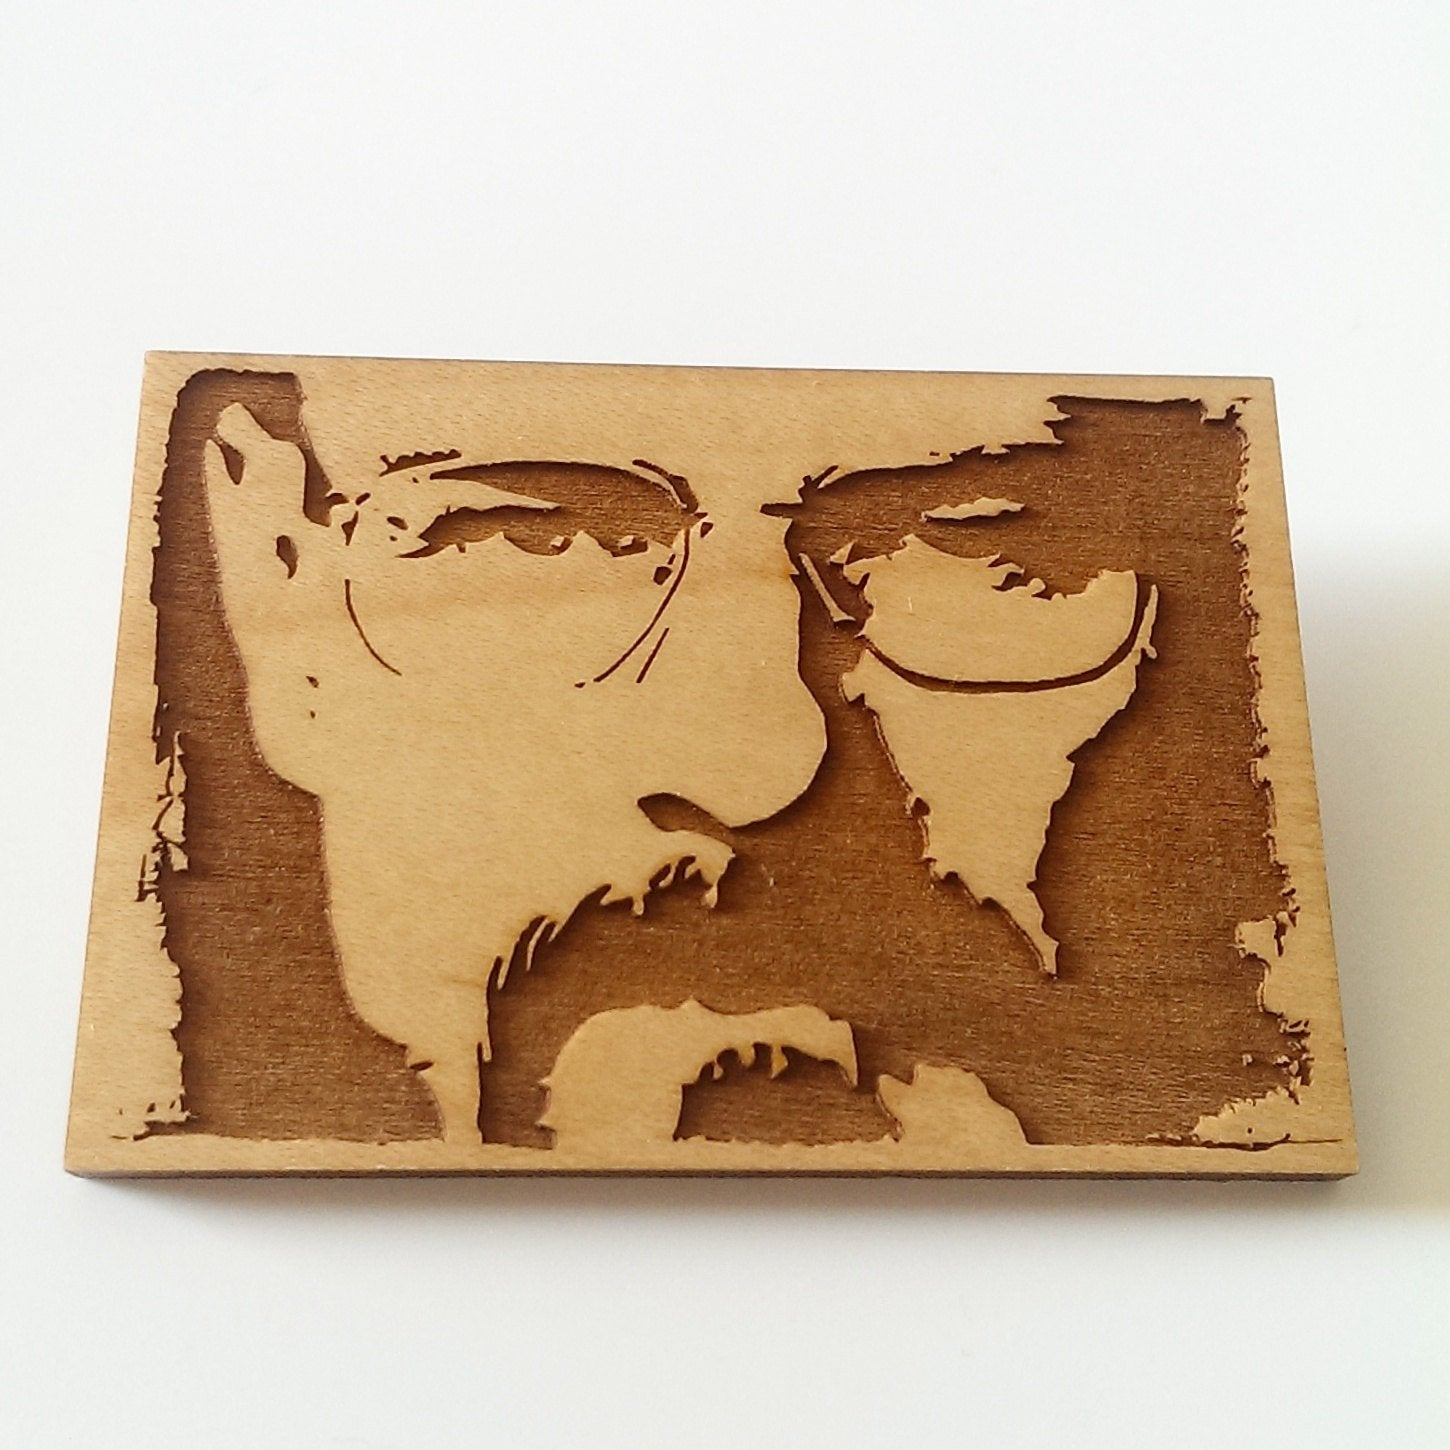 Limited Edition - Bryan Cranston, Breaking Bad - Walter White - Engraved - Key Ring, Magnet or brooch